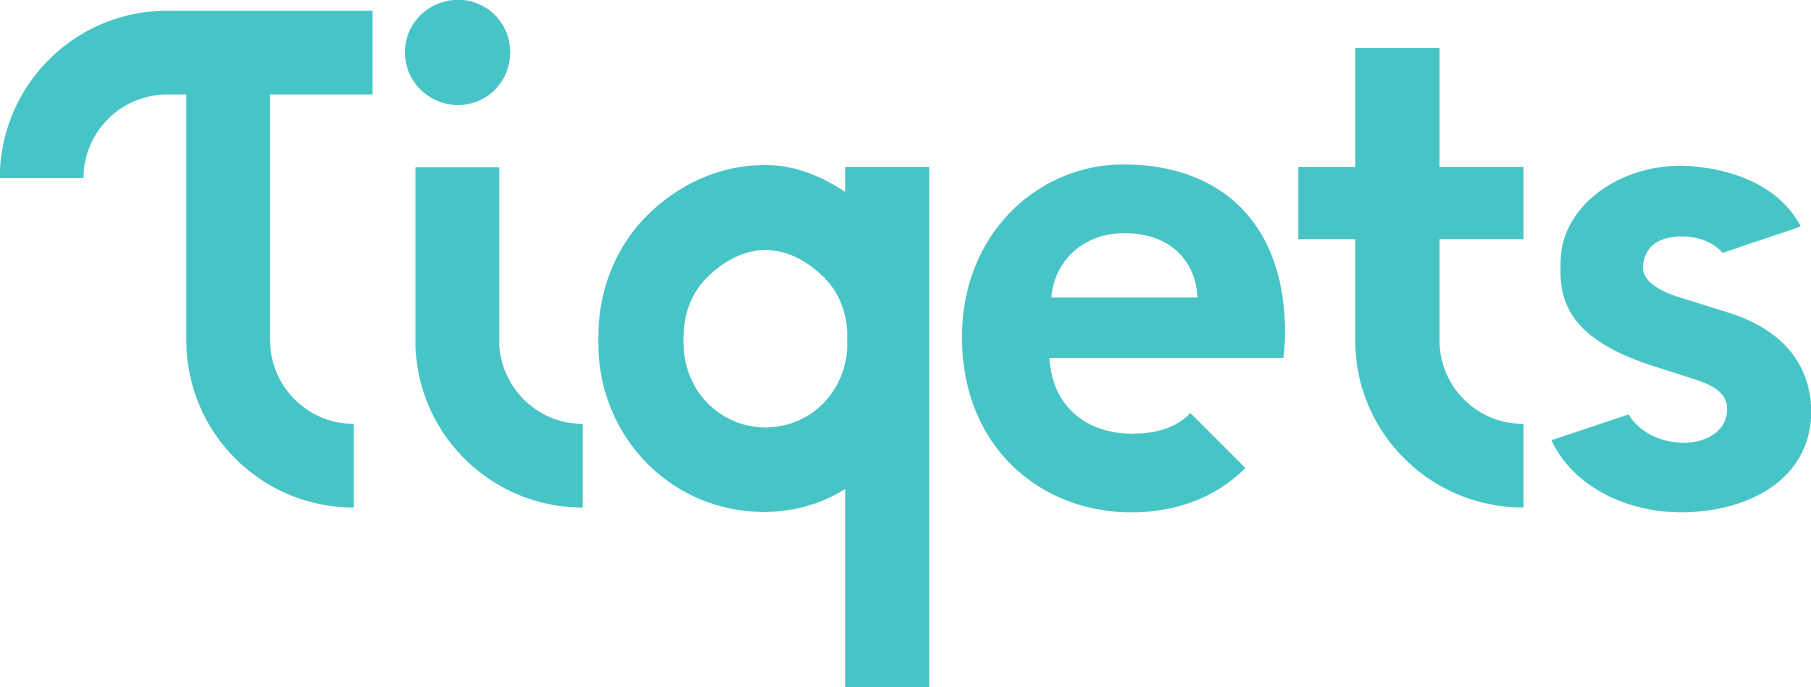 tiqets-logotype-color